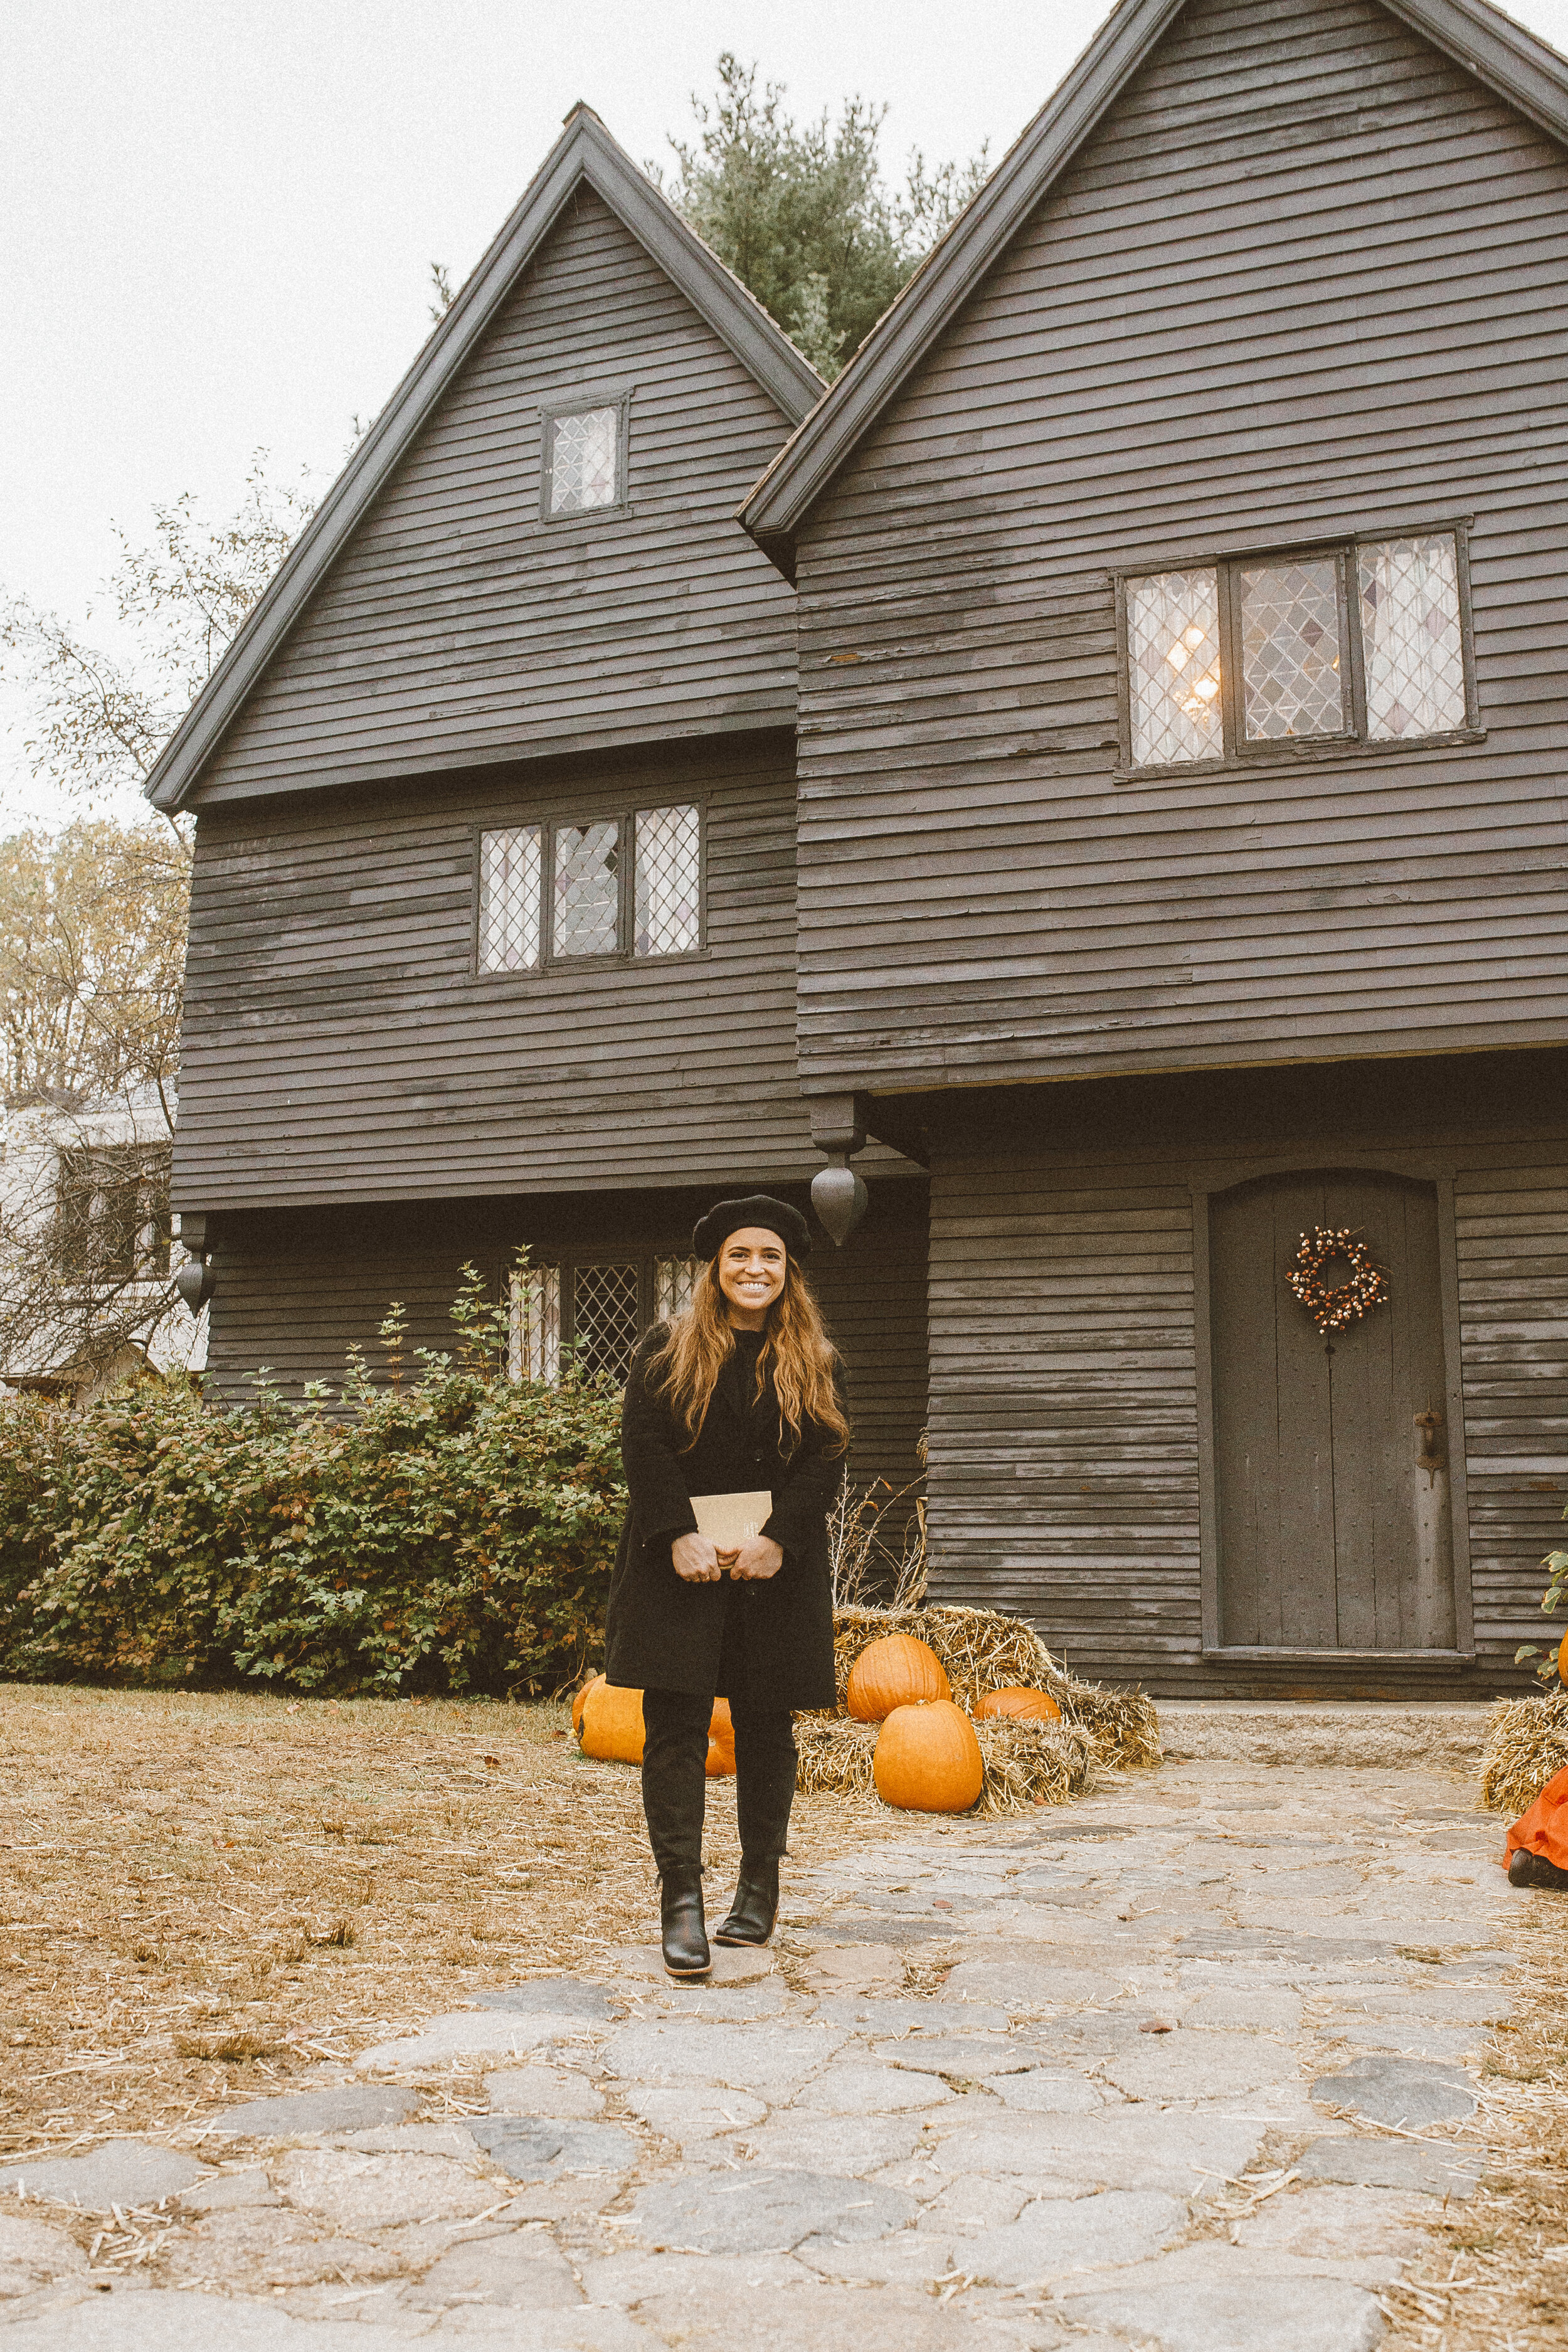 The Witch House—310 1/2 ESSEX STREET